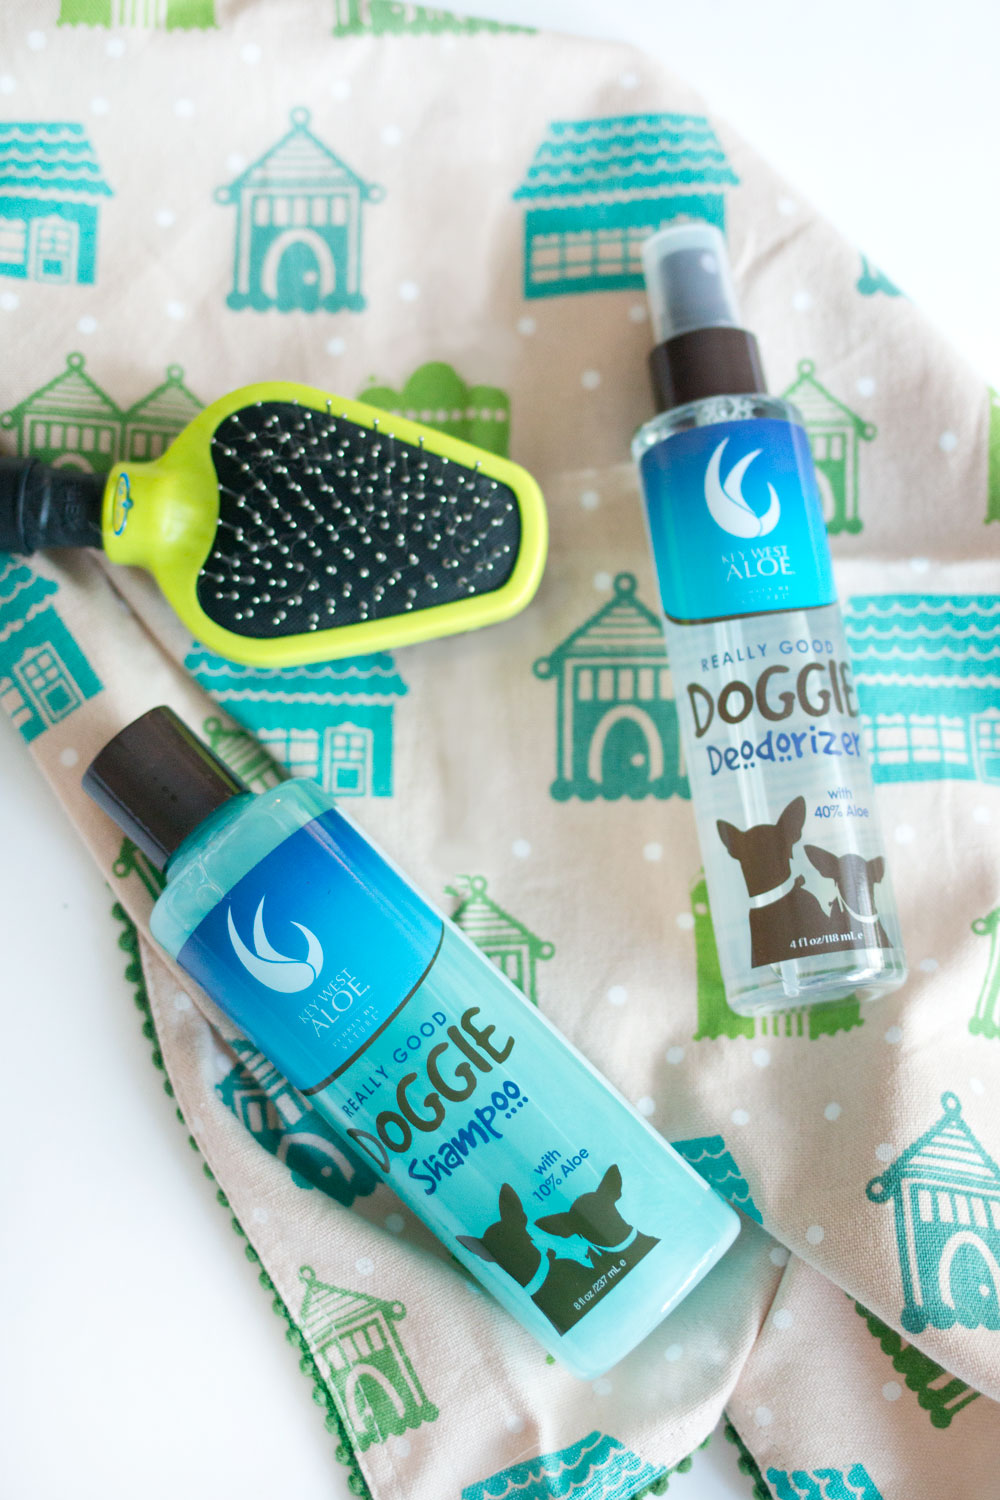 Key West Aloe Really Good Doggie Deodorizer & Shampoo // Hello Rigby Seattle Beauty & Style Blog